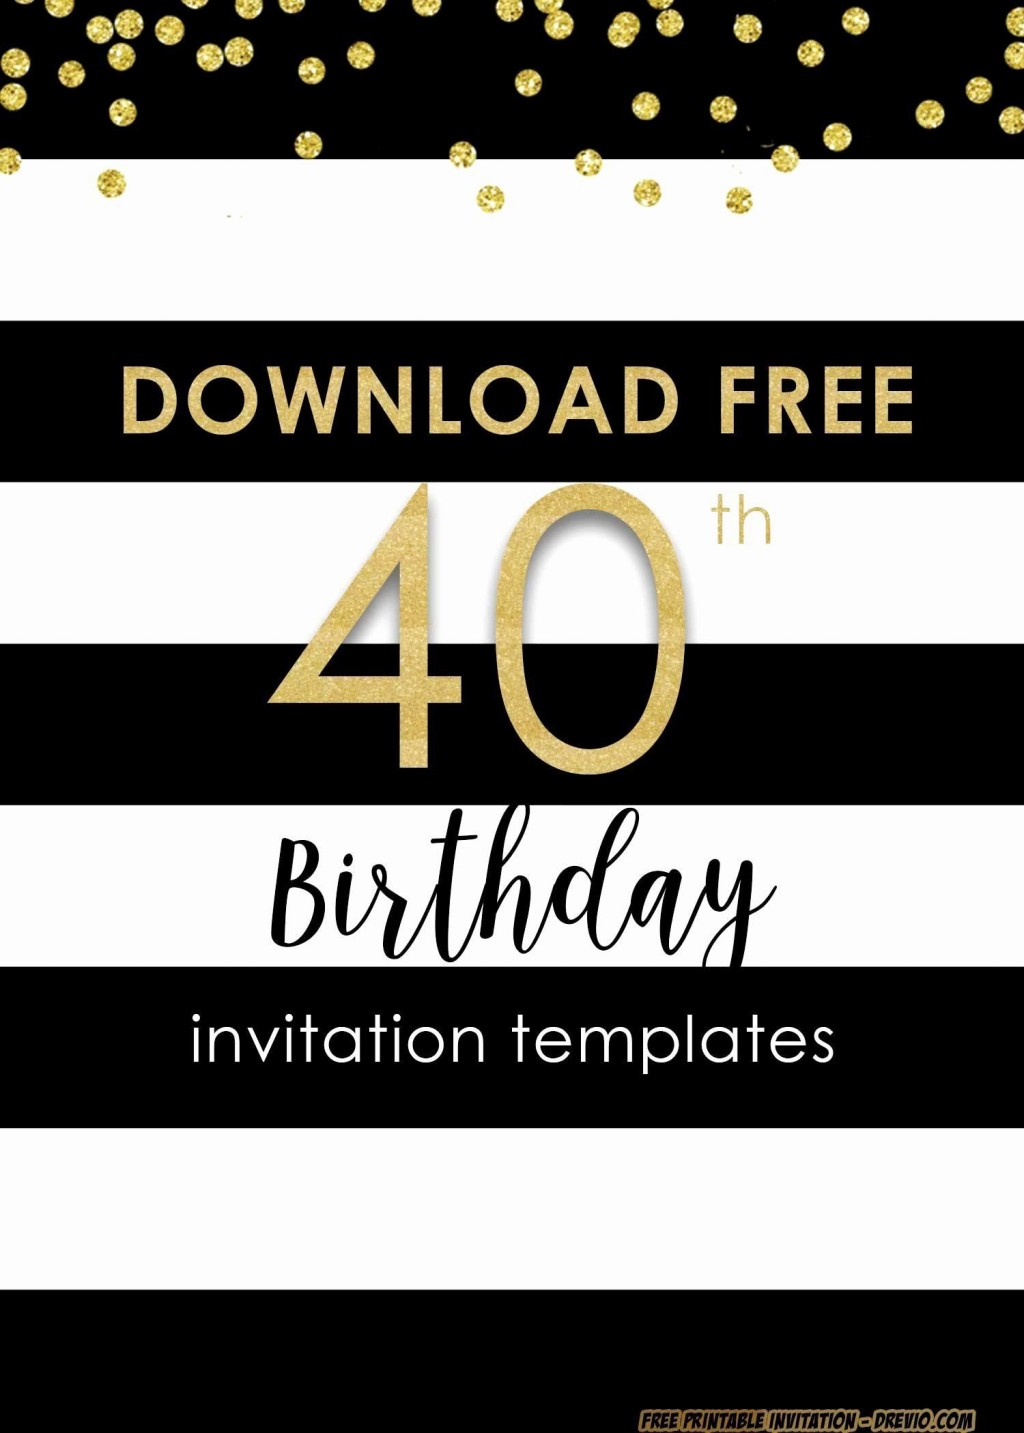 001 Sensational 40th Birthday Party Invite Template Free Image Large